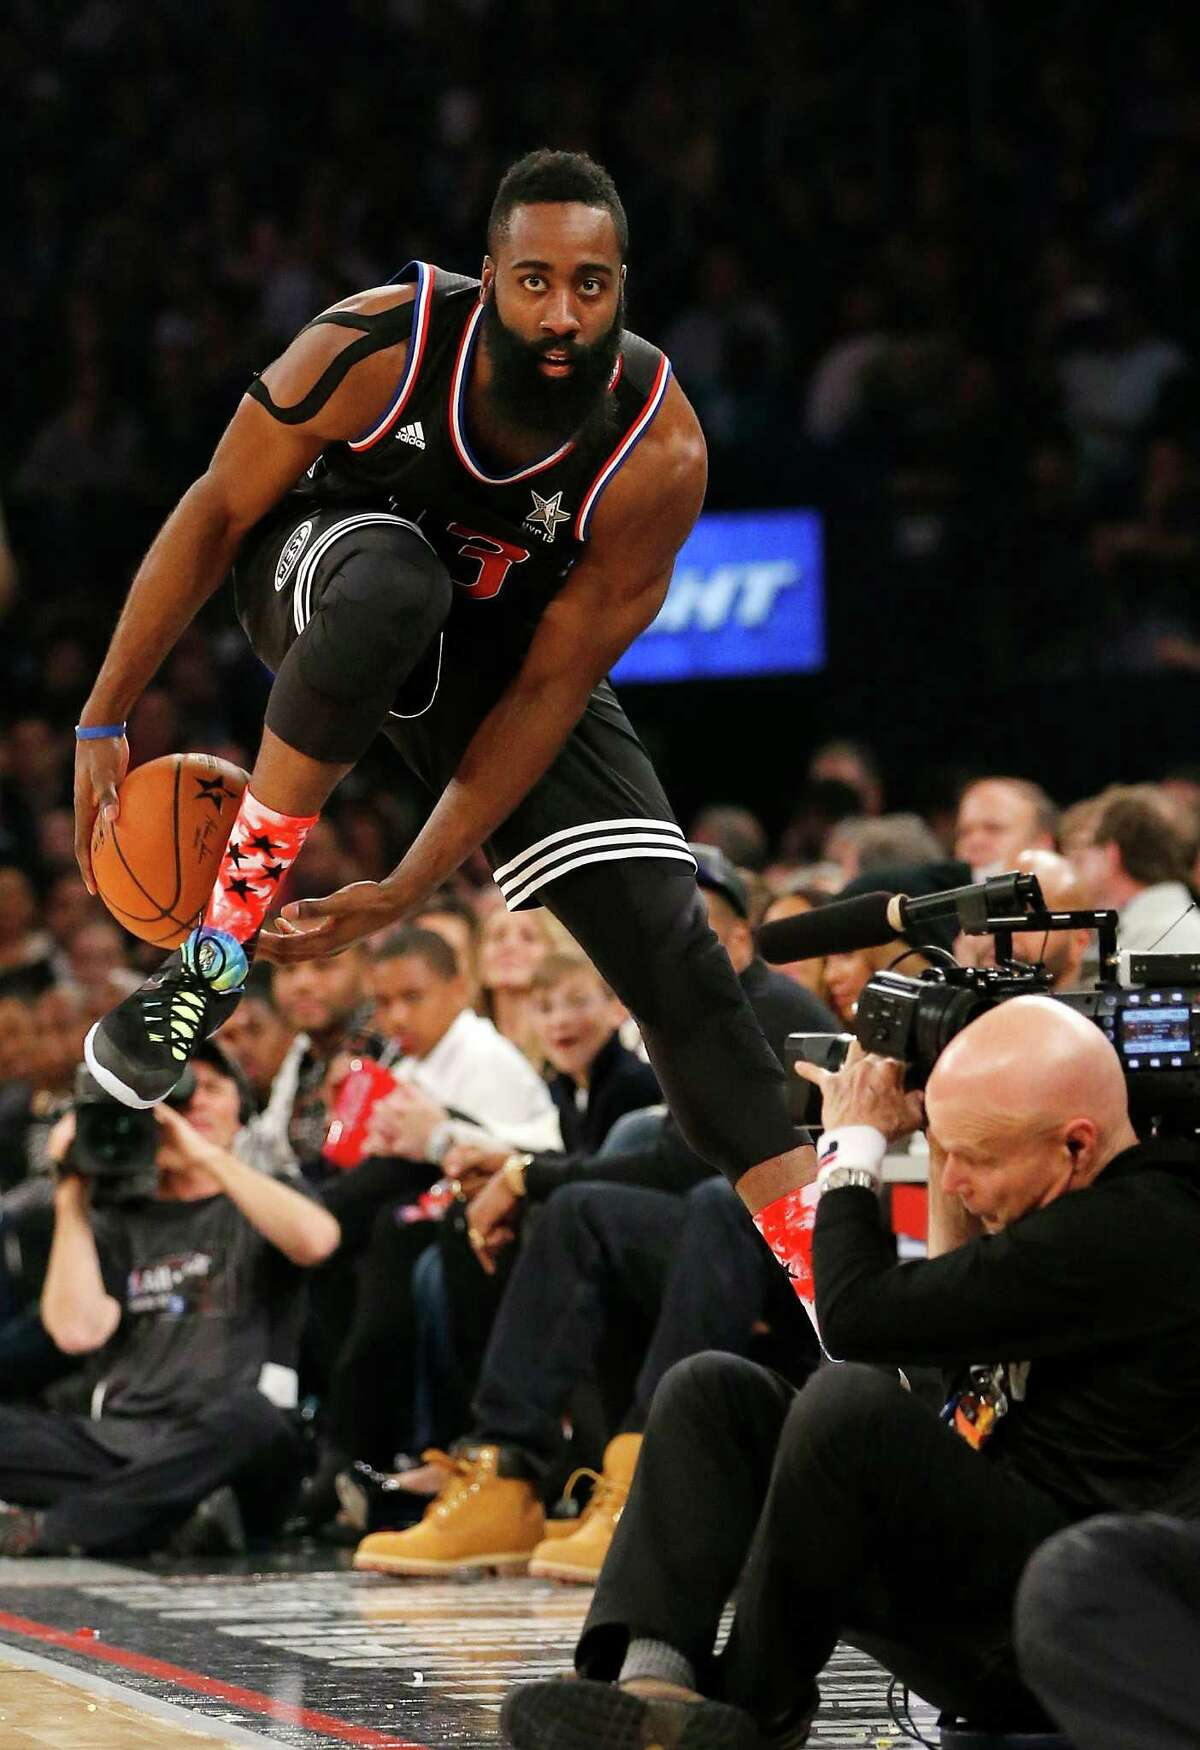 West Team's James Harden, of the Houston Rockets, tries to keep the ball inbounds during the second half of the NBA All-Star basketball game, Sunday, Feb. 15, 2015, in New York. (AP Photo/Kathy Willens)